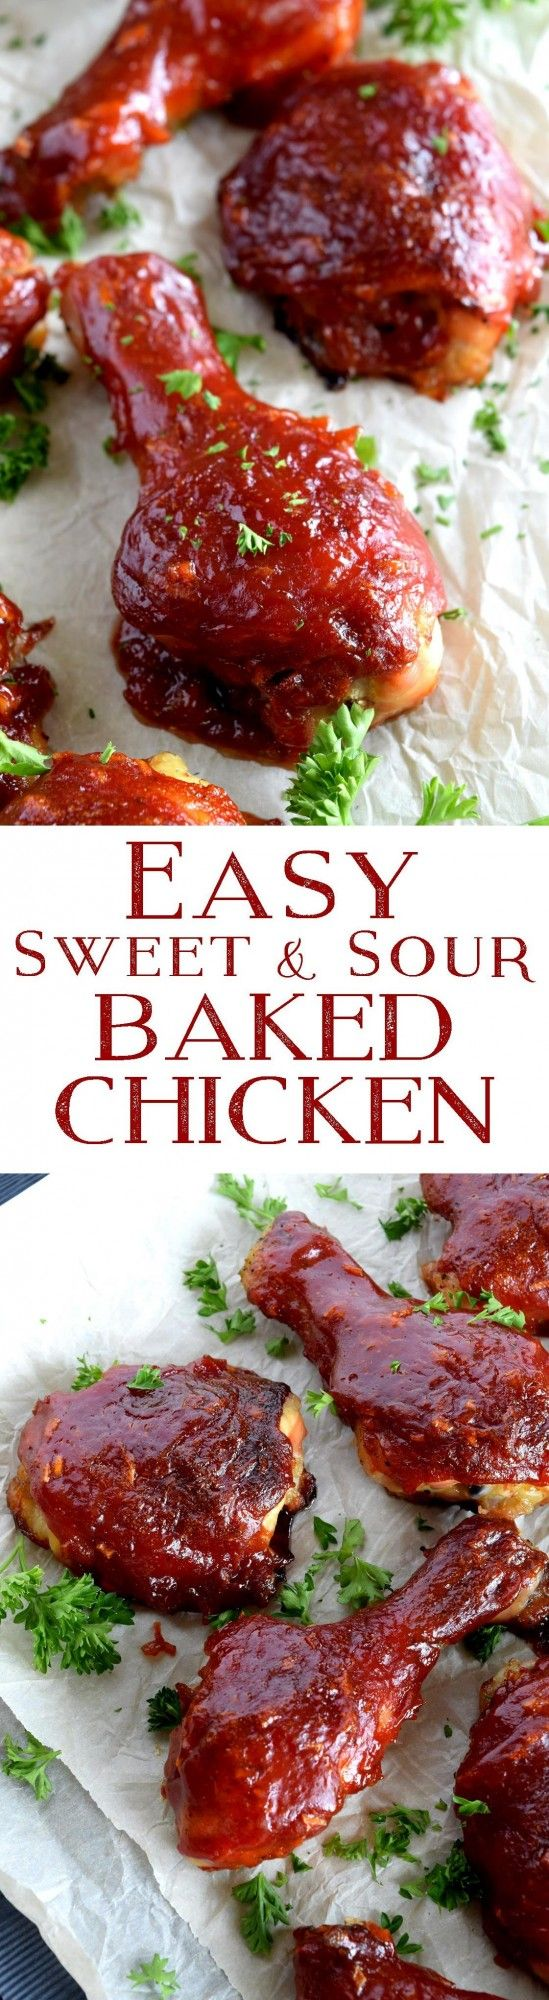 Easy Sweet and Sour Baked Chicken - Lord Byron's Kitchen